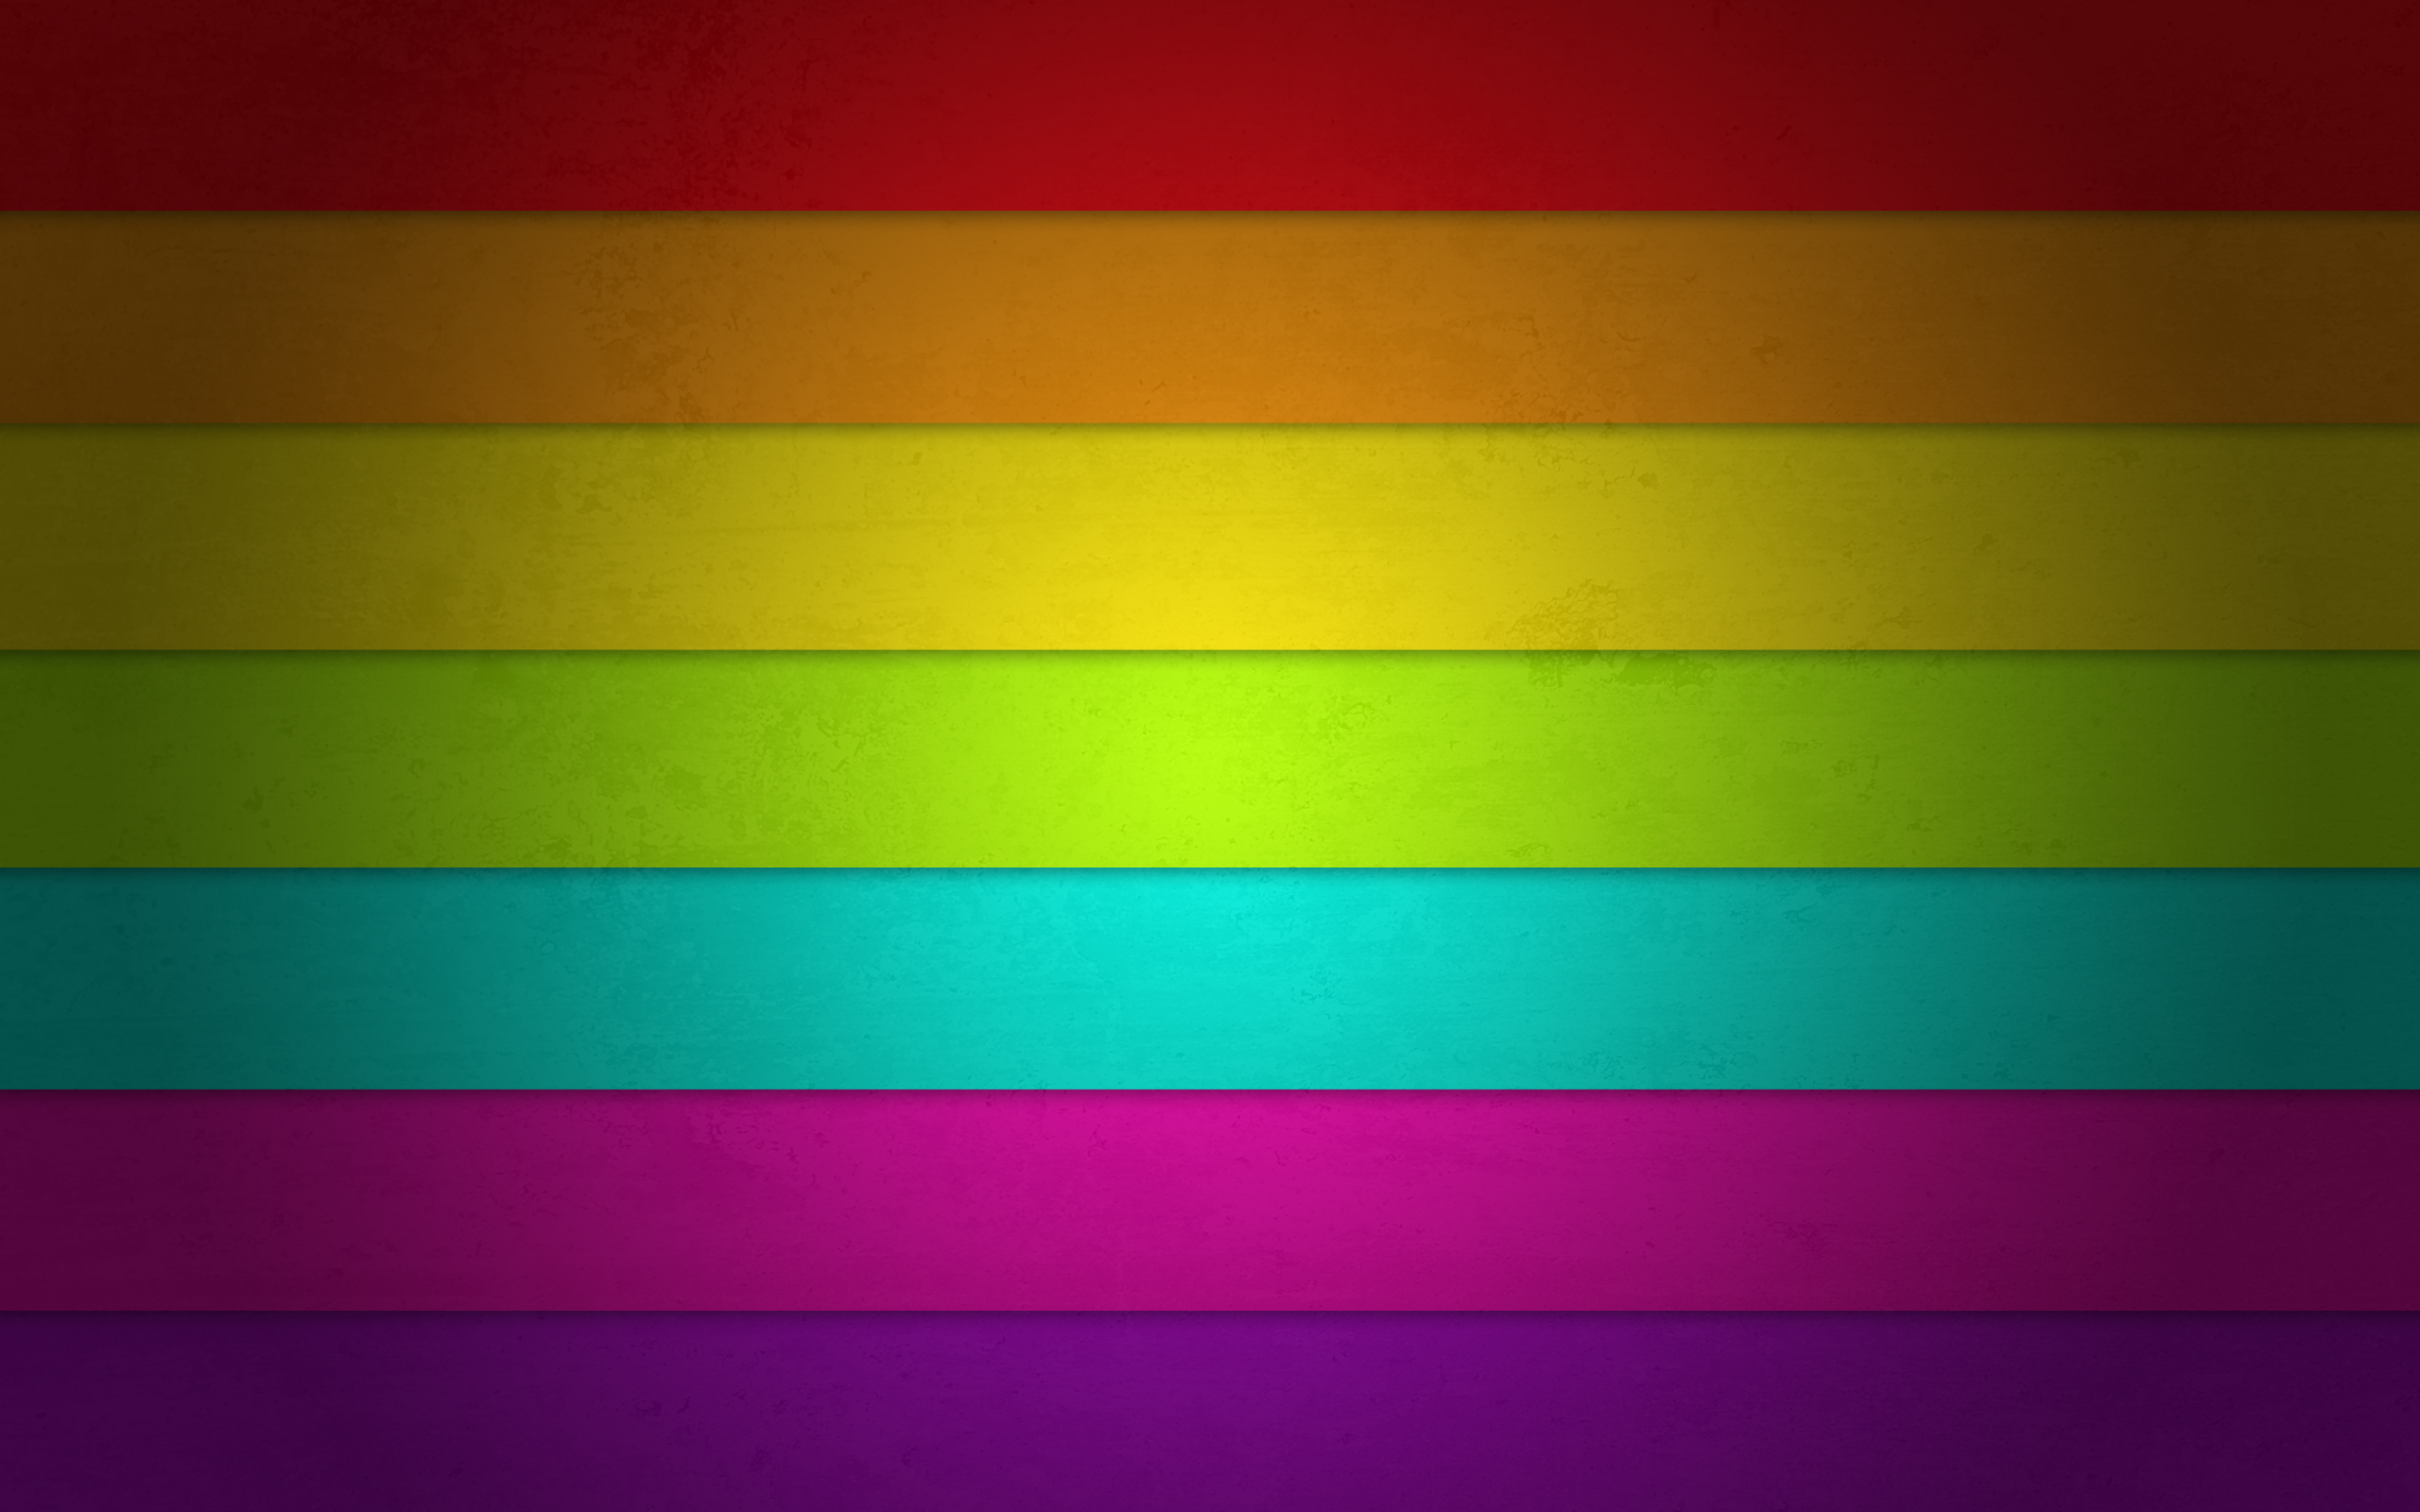 texture image: rainbow, texture, background, download photo, rainbow ...: https://bgfons.com/download/664